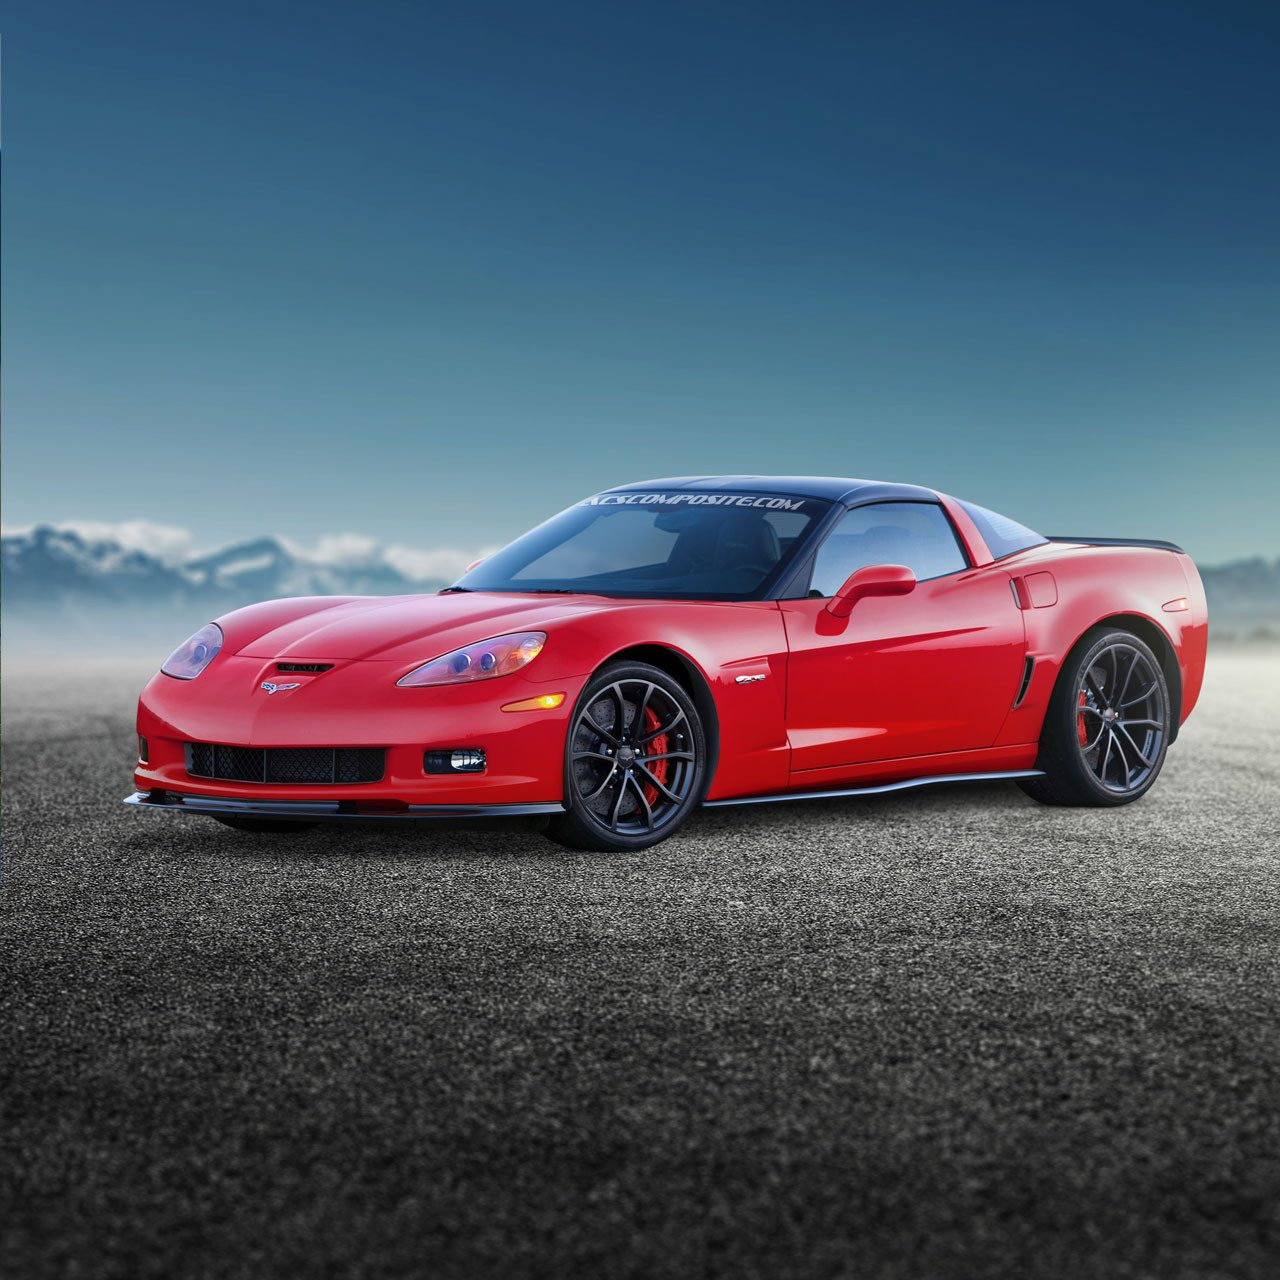 2005 C6 Corvette | Image Gallery & Pictures